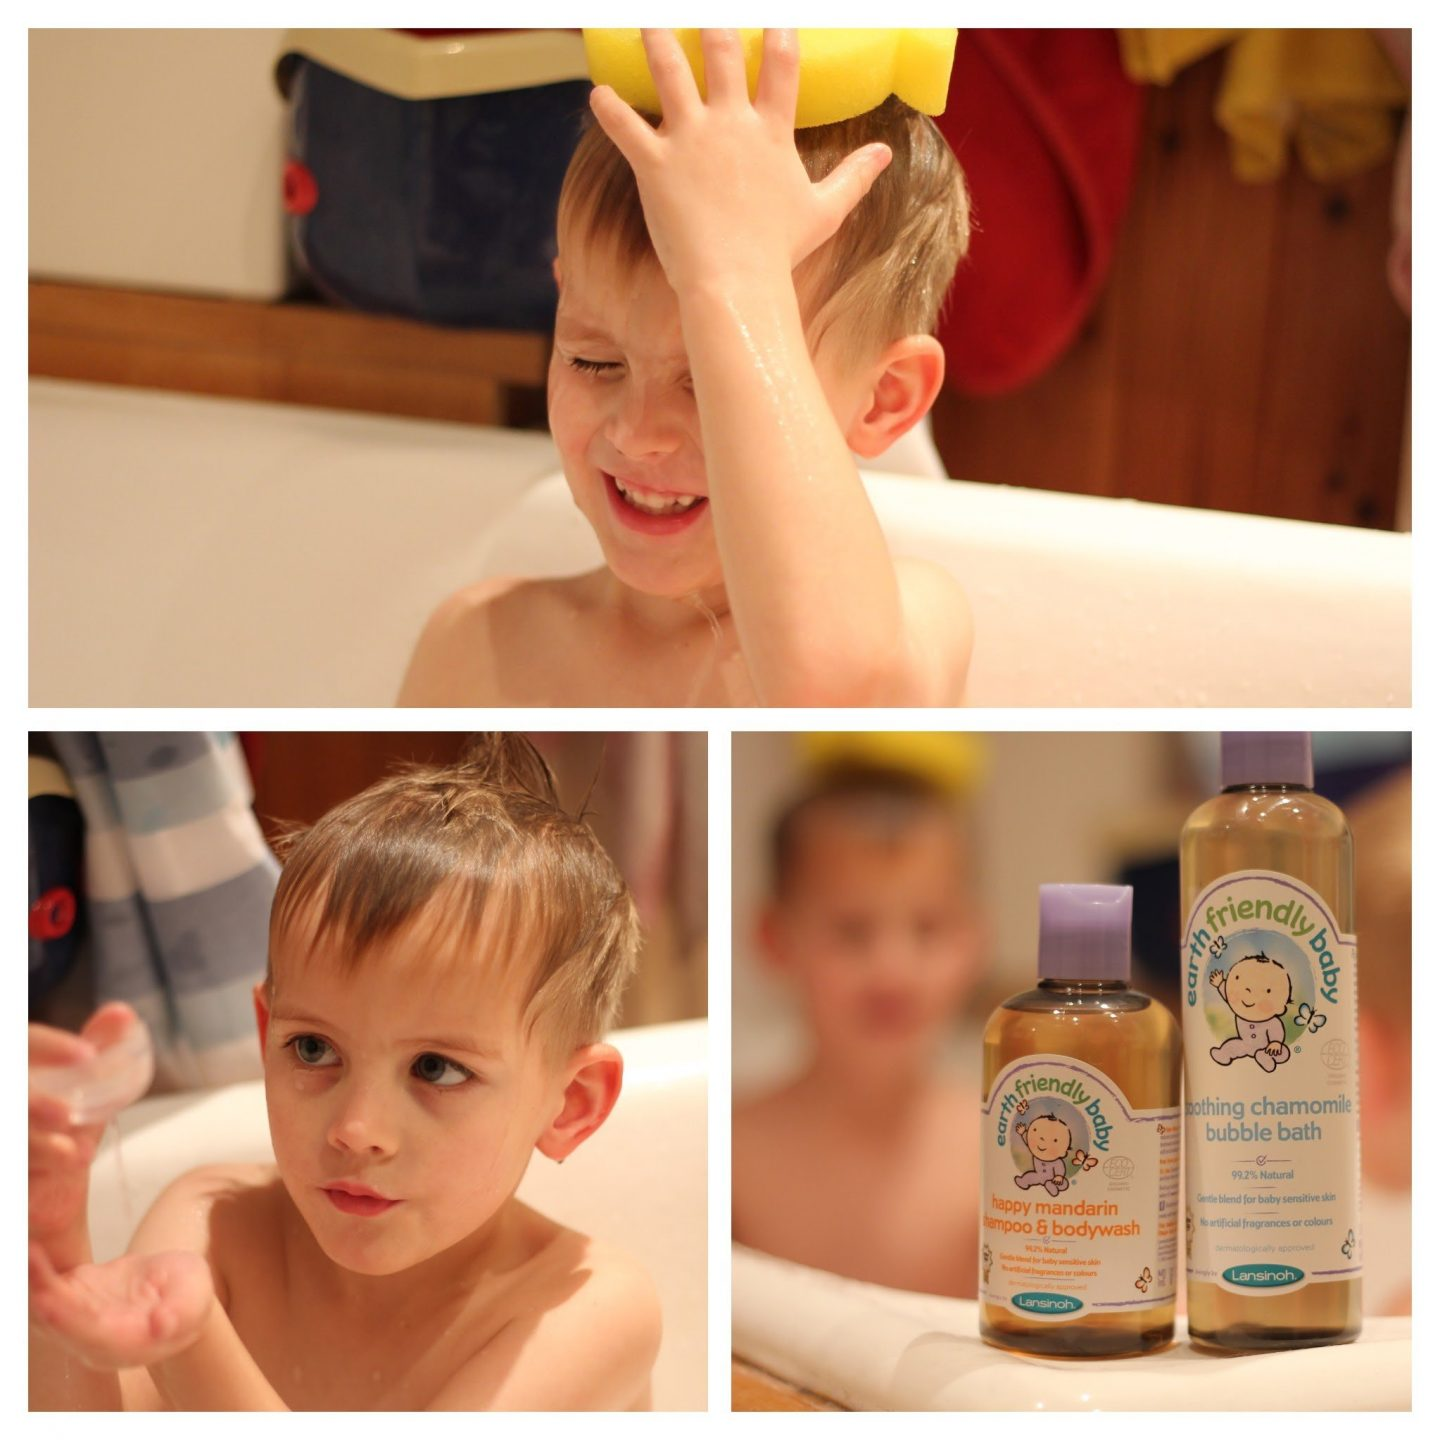 REVIEW: Earth Friendly Baby organic bath products